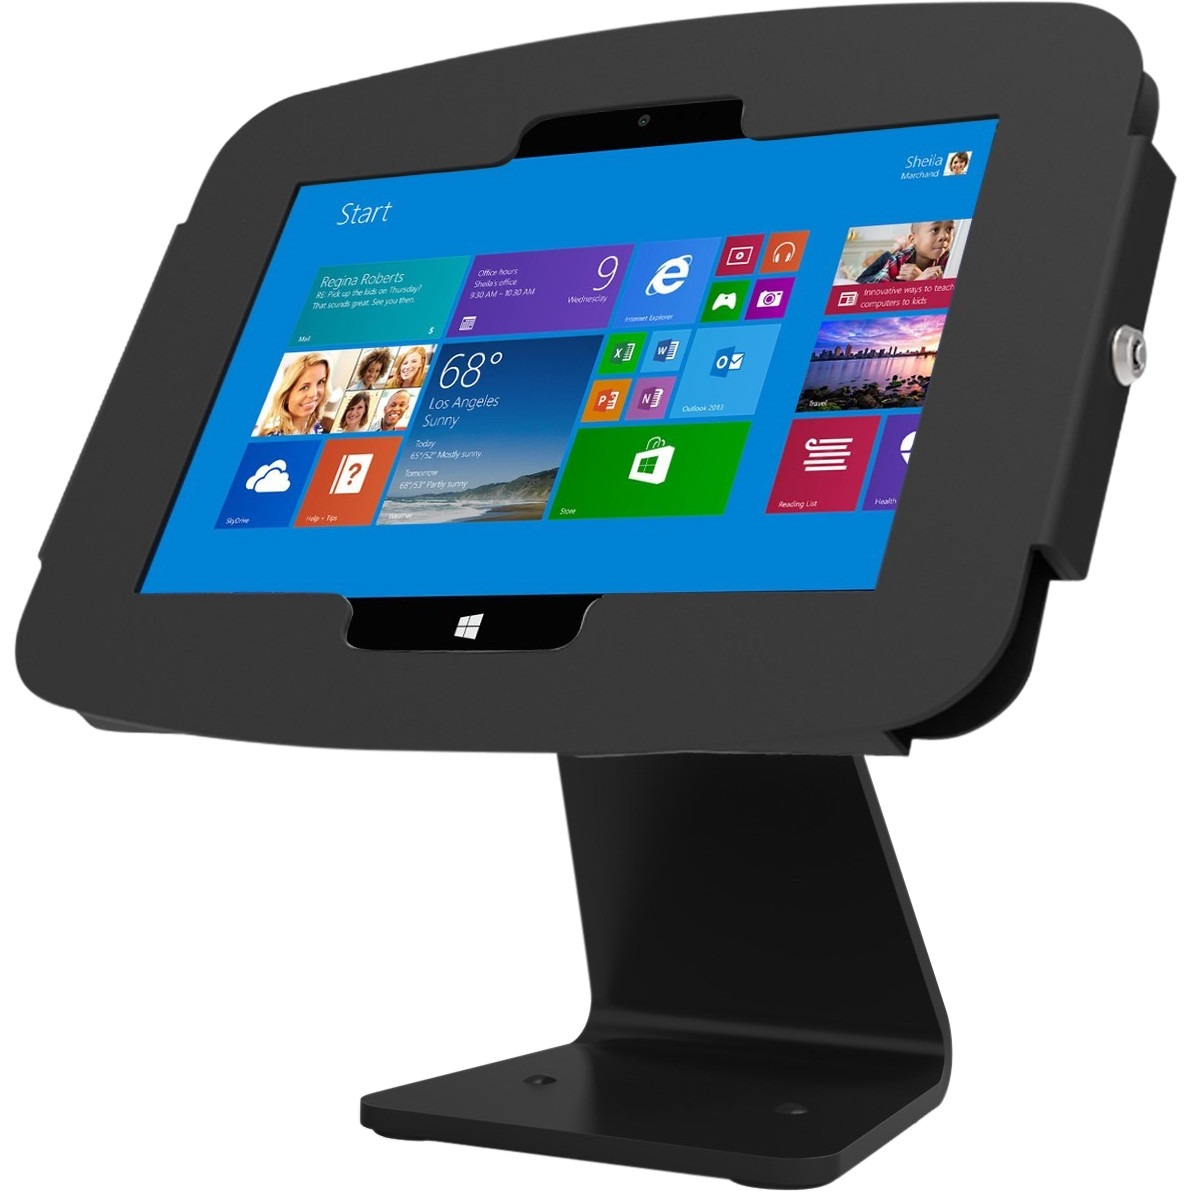 Compulocks Space Surface Tablet Enclosure 360 Kiosk - Surface Kiosk - Surface Pro Enclosure - Black